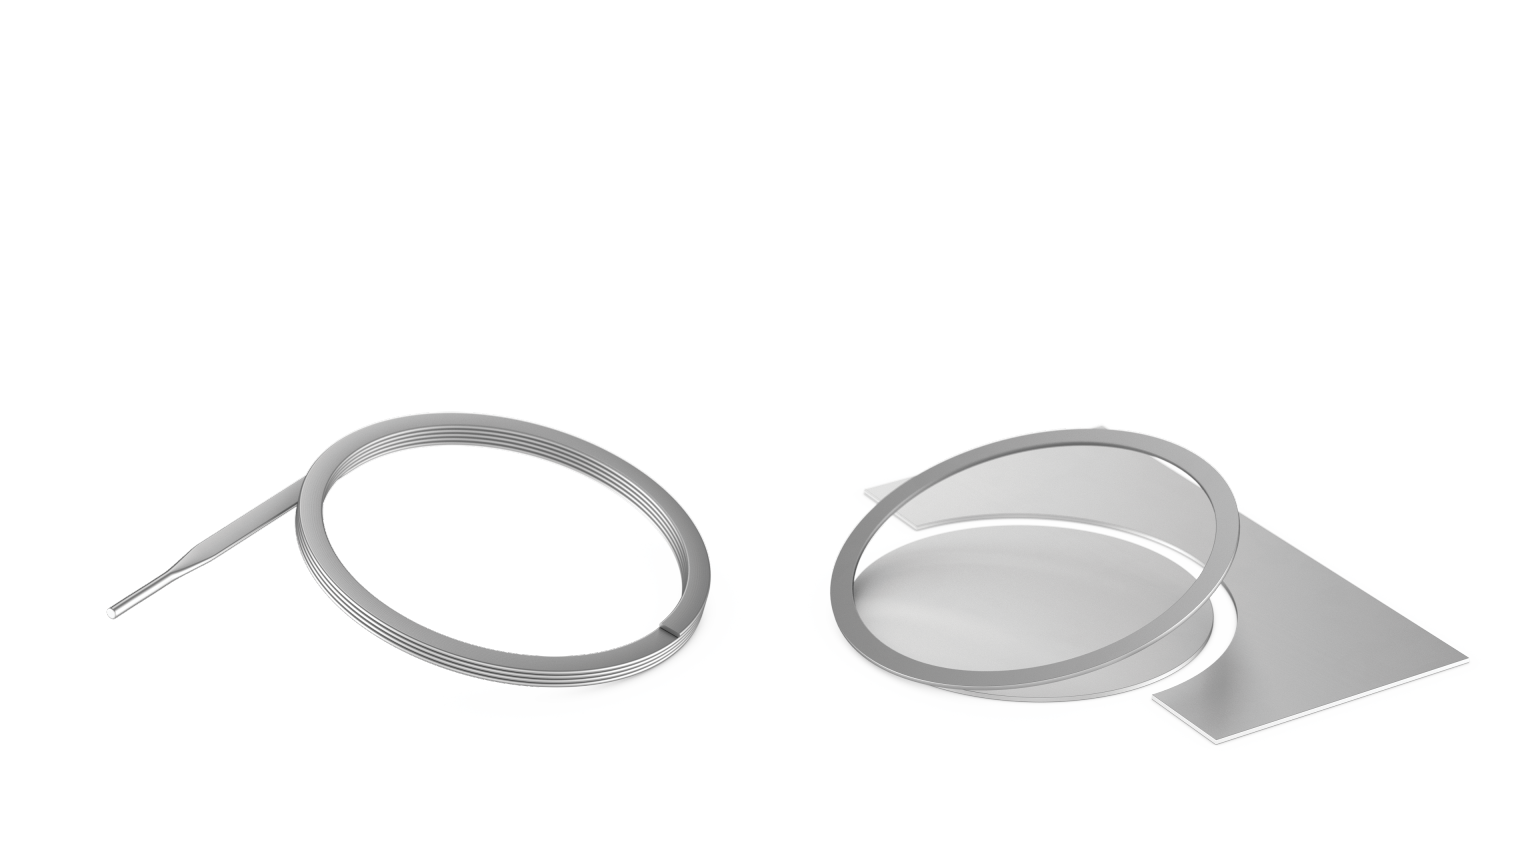 On the left is an edgewound retaining ring and on the right is a traditional stamped retaining ring